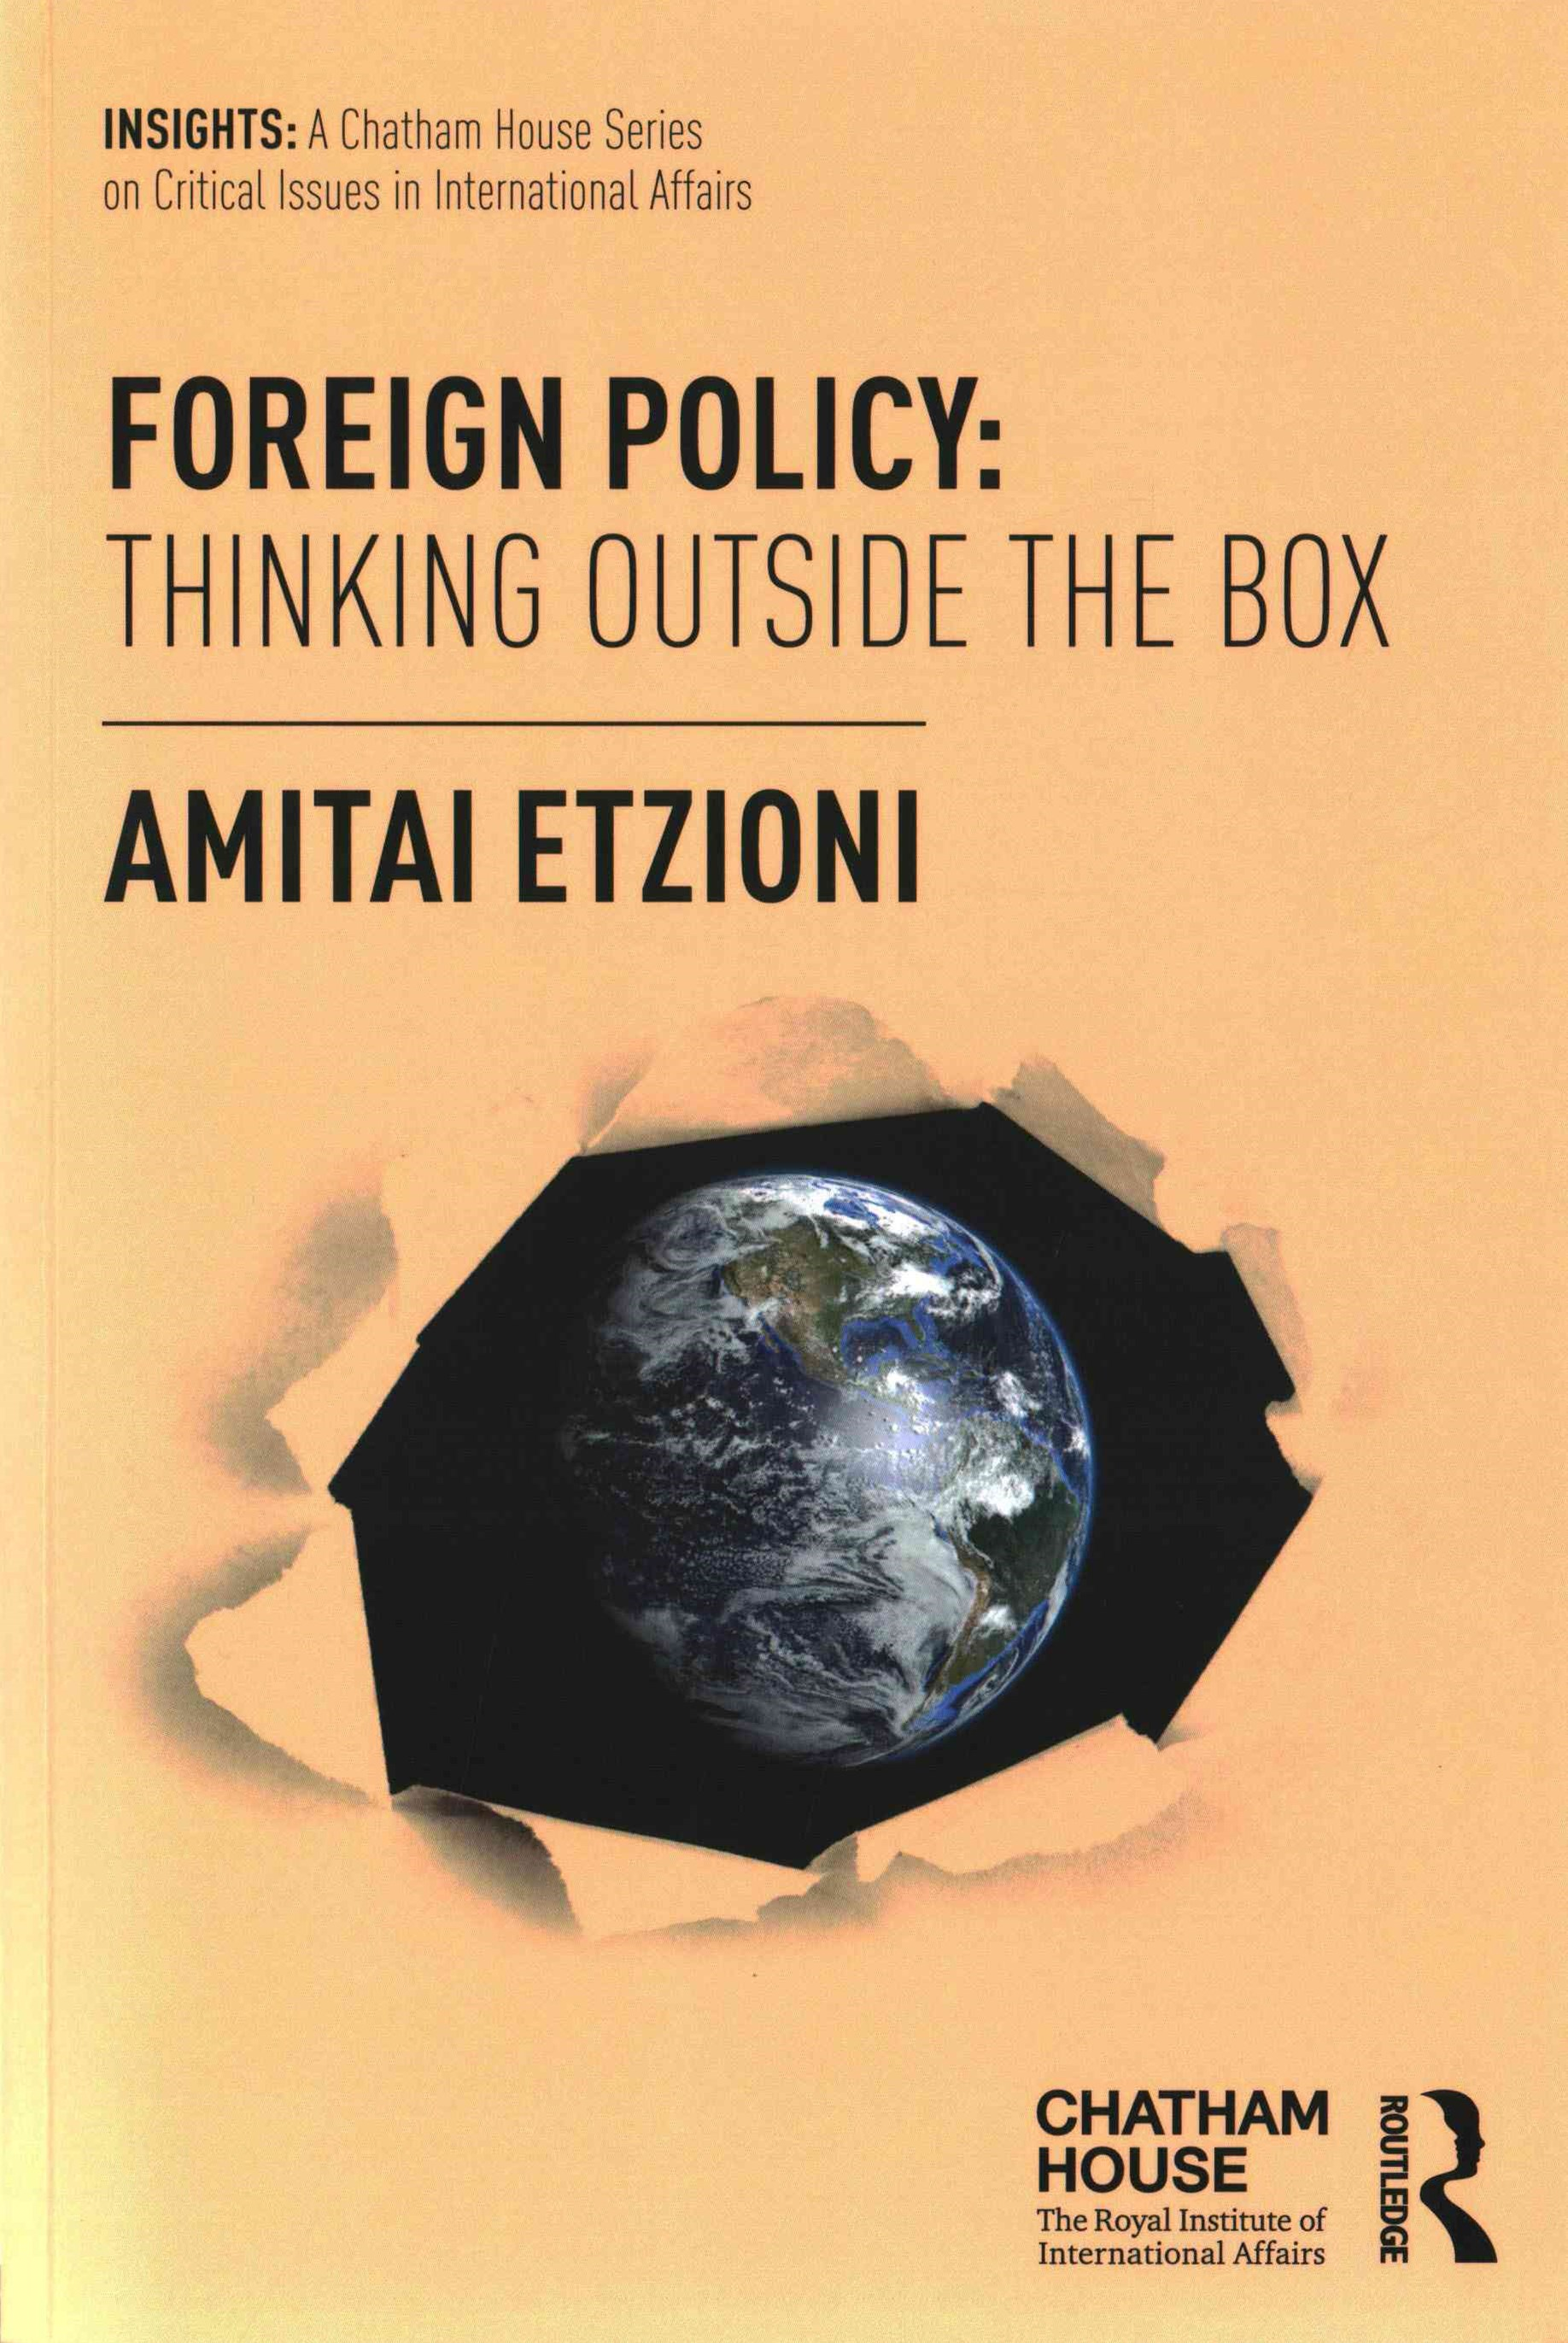 Foreign Policy: Thinking Outside the Box